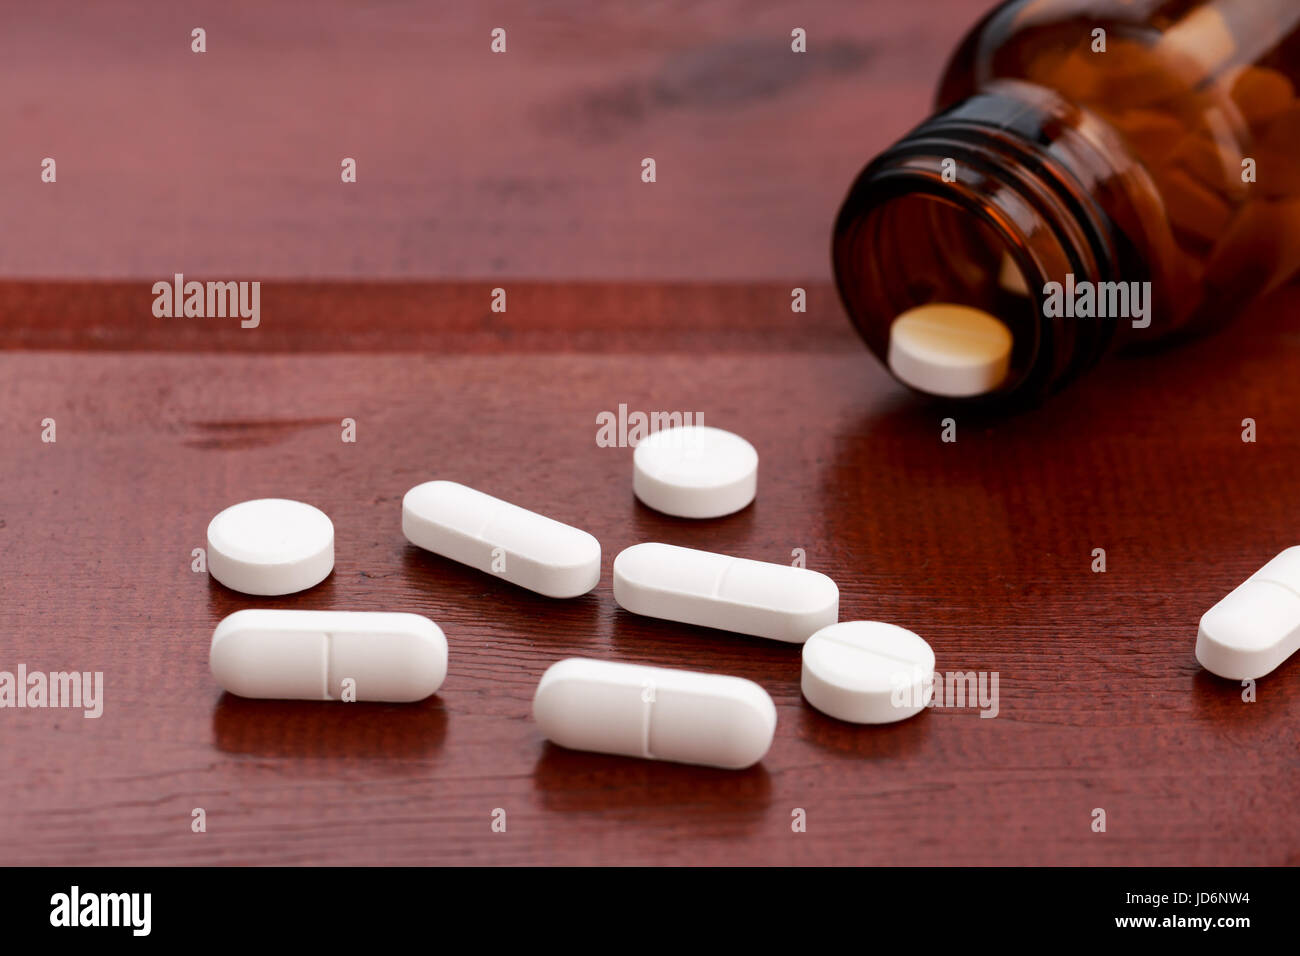 Brown pills bottles and heap of white pills on wooden table - Stock Image